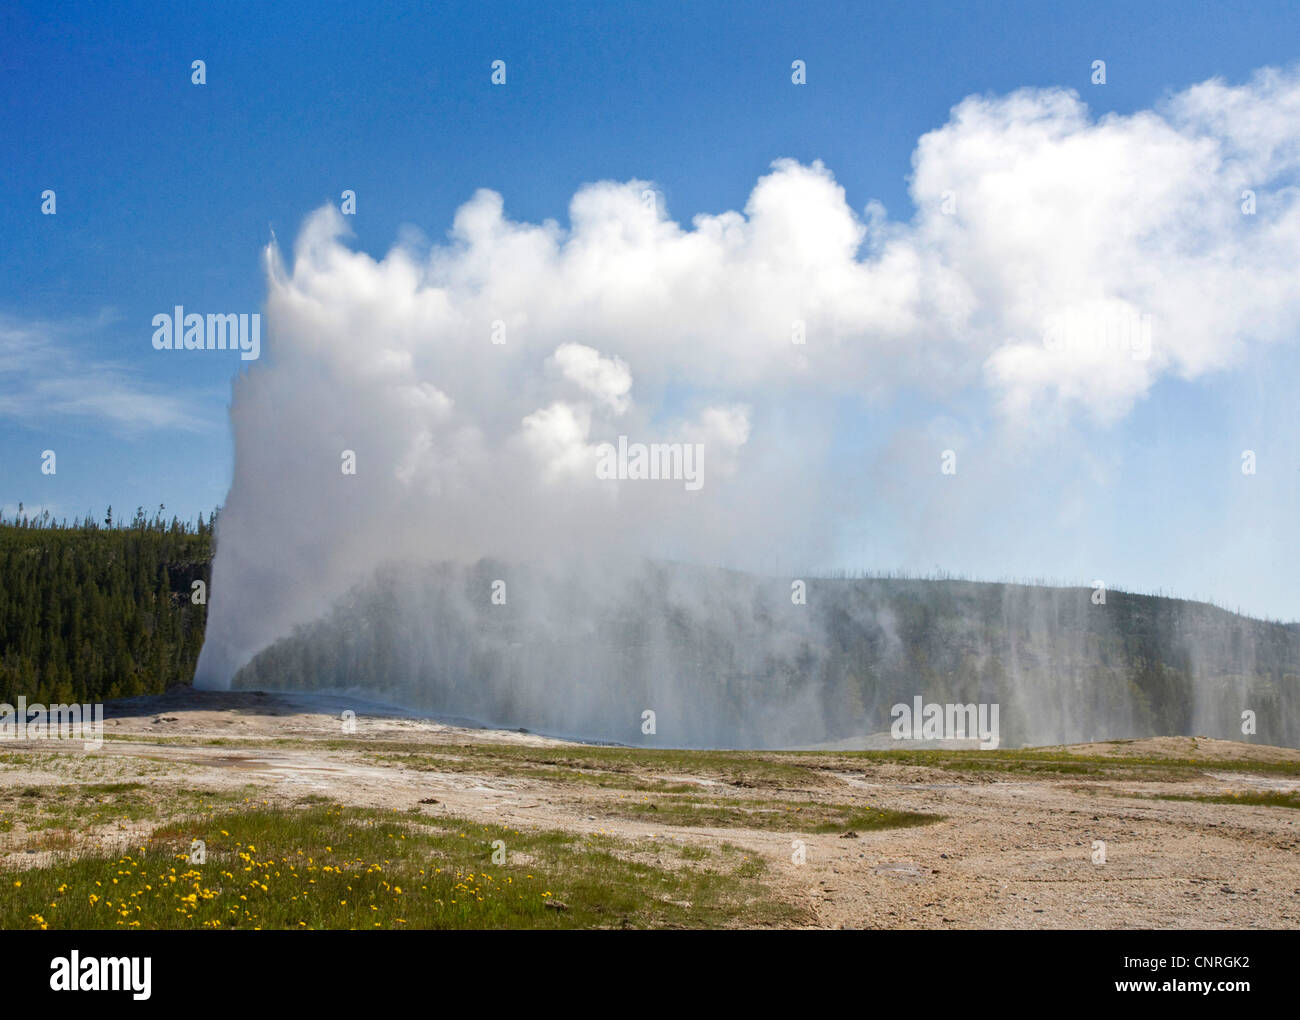 OLD FAITHFUL GEYSER erupts hourly sending as much as 8,400 gallons of boiling water 184 feet into the air, USA, - Stock Image